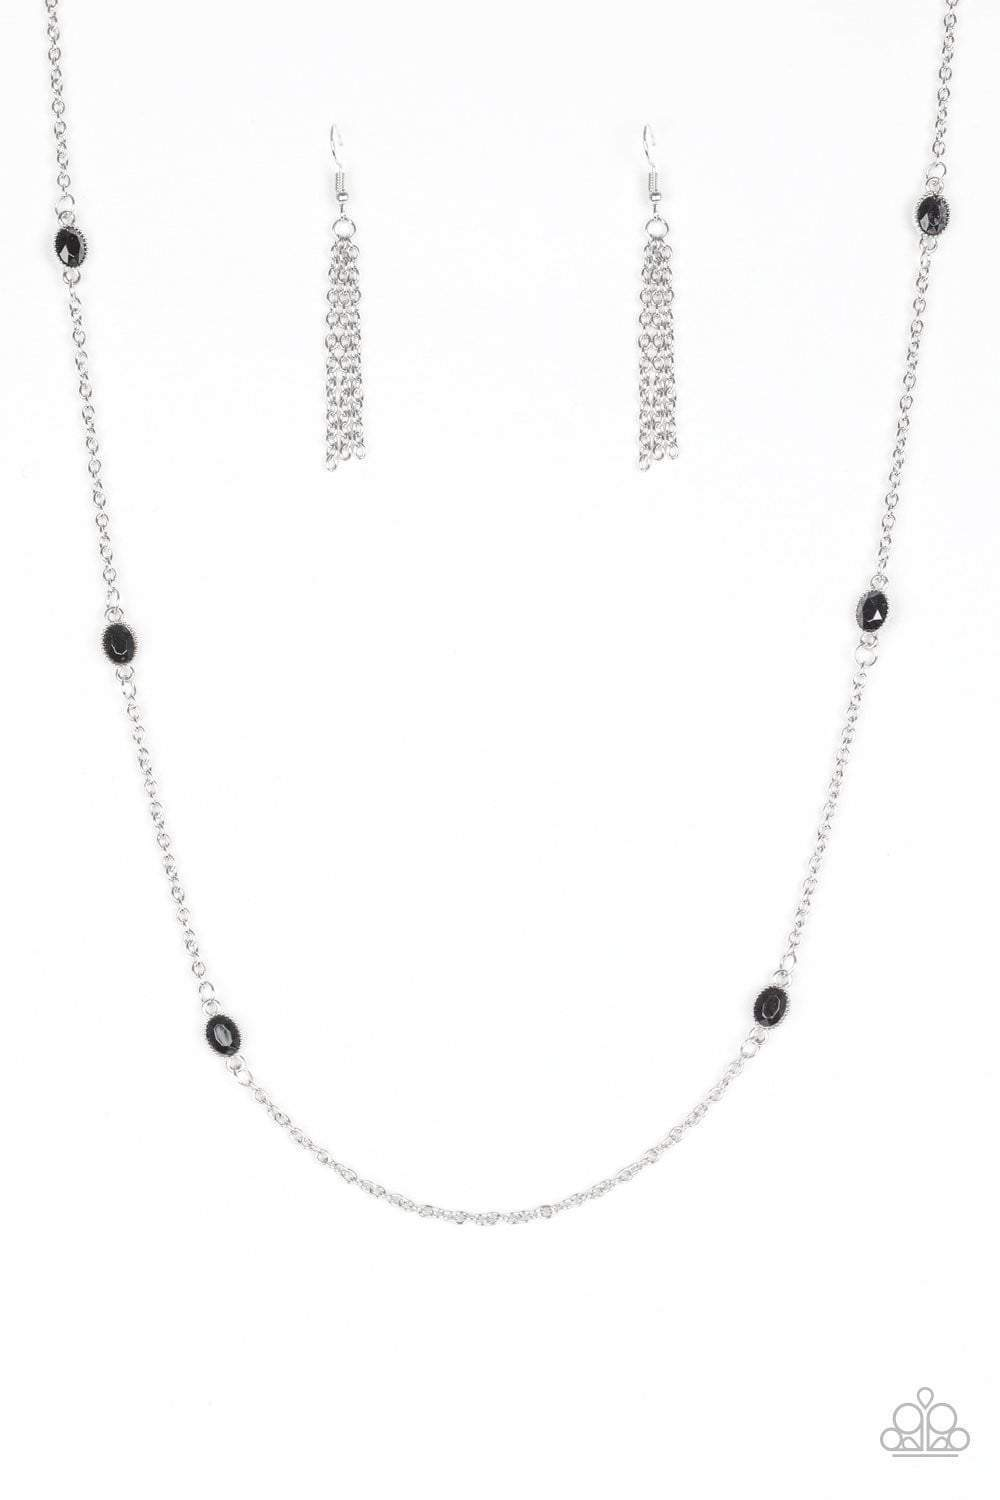 Paparazzi In Season - Black Bead Studded Silver Frame Necklace - Bling It On Online